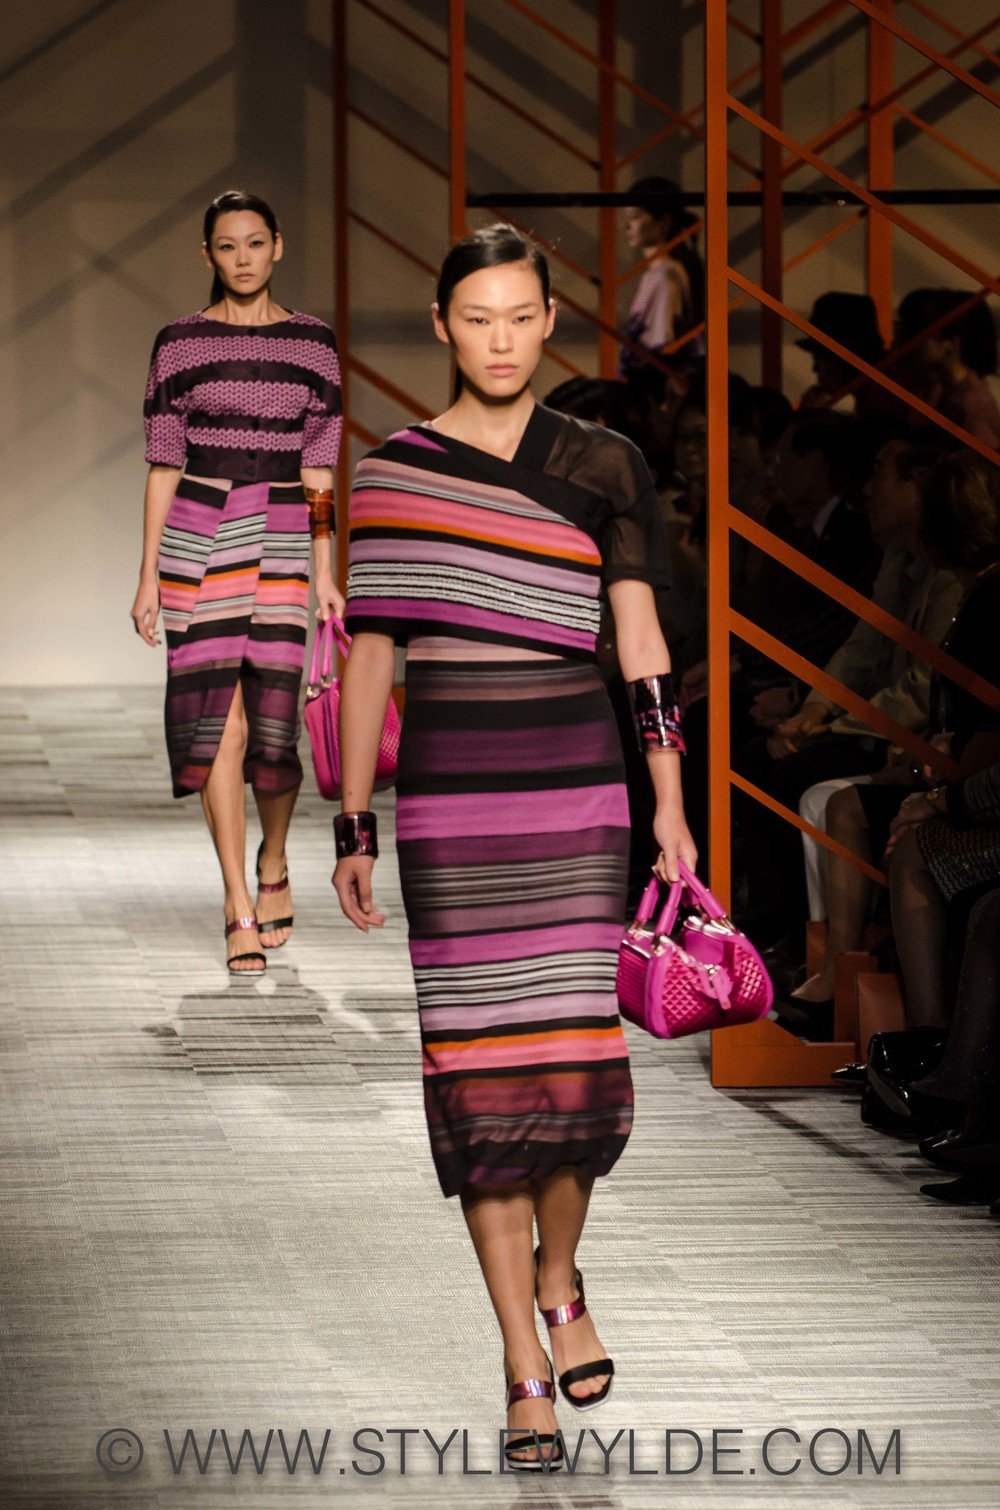 STYLEWYLDE_Missoni_SS2014 (1 of 1)-13.jpg